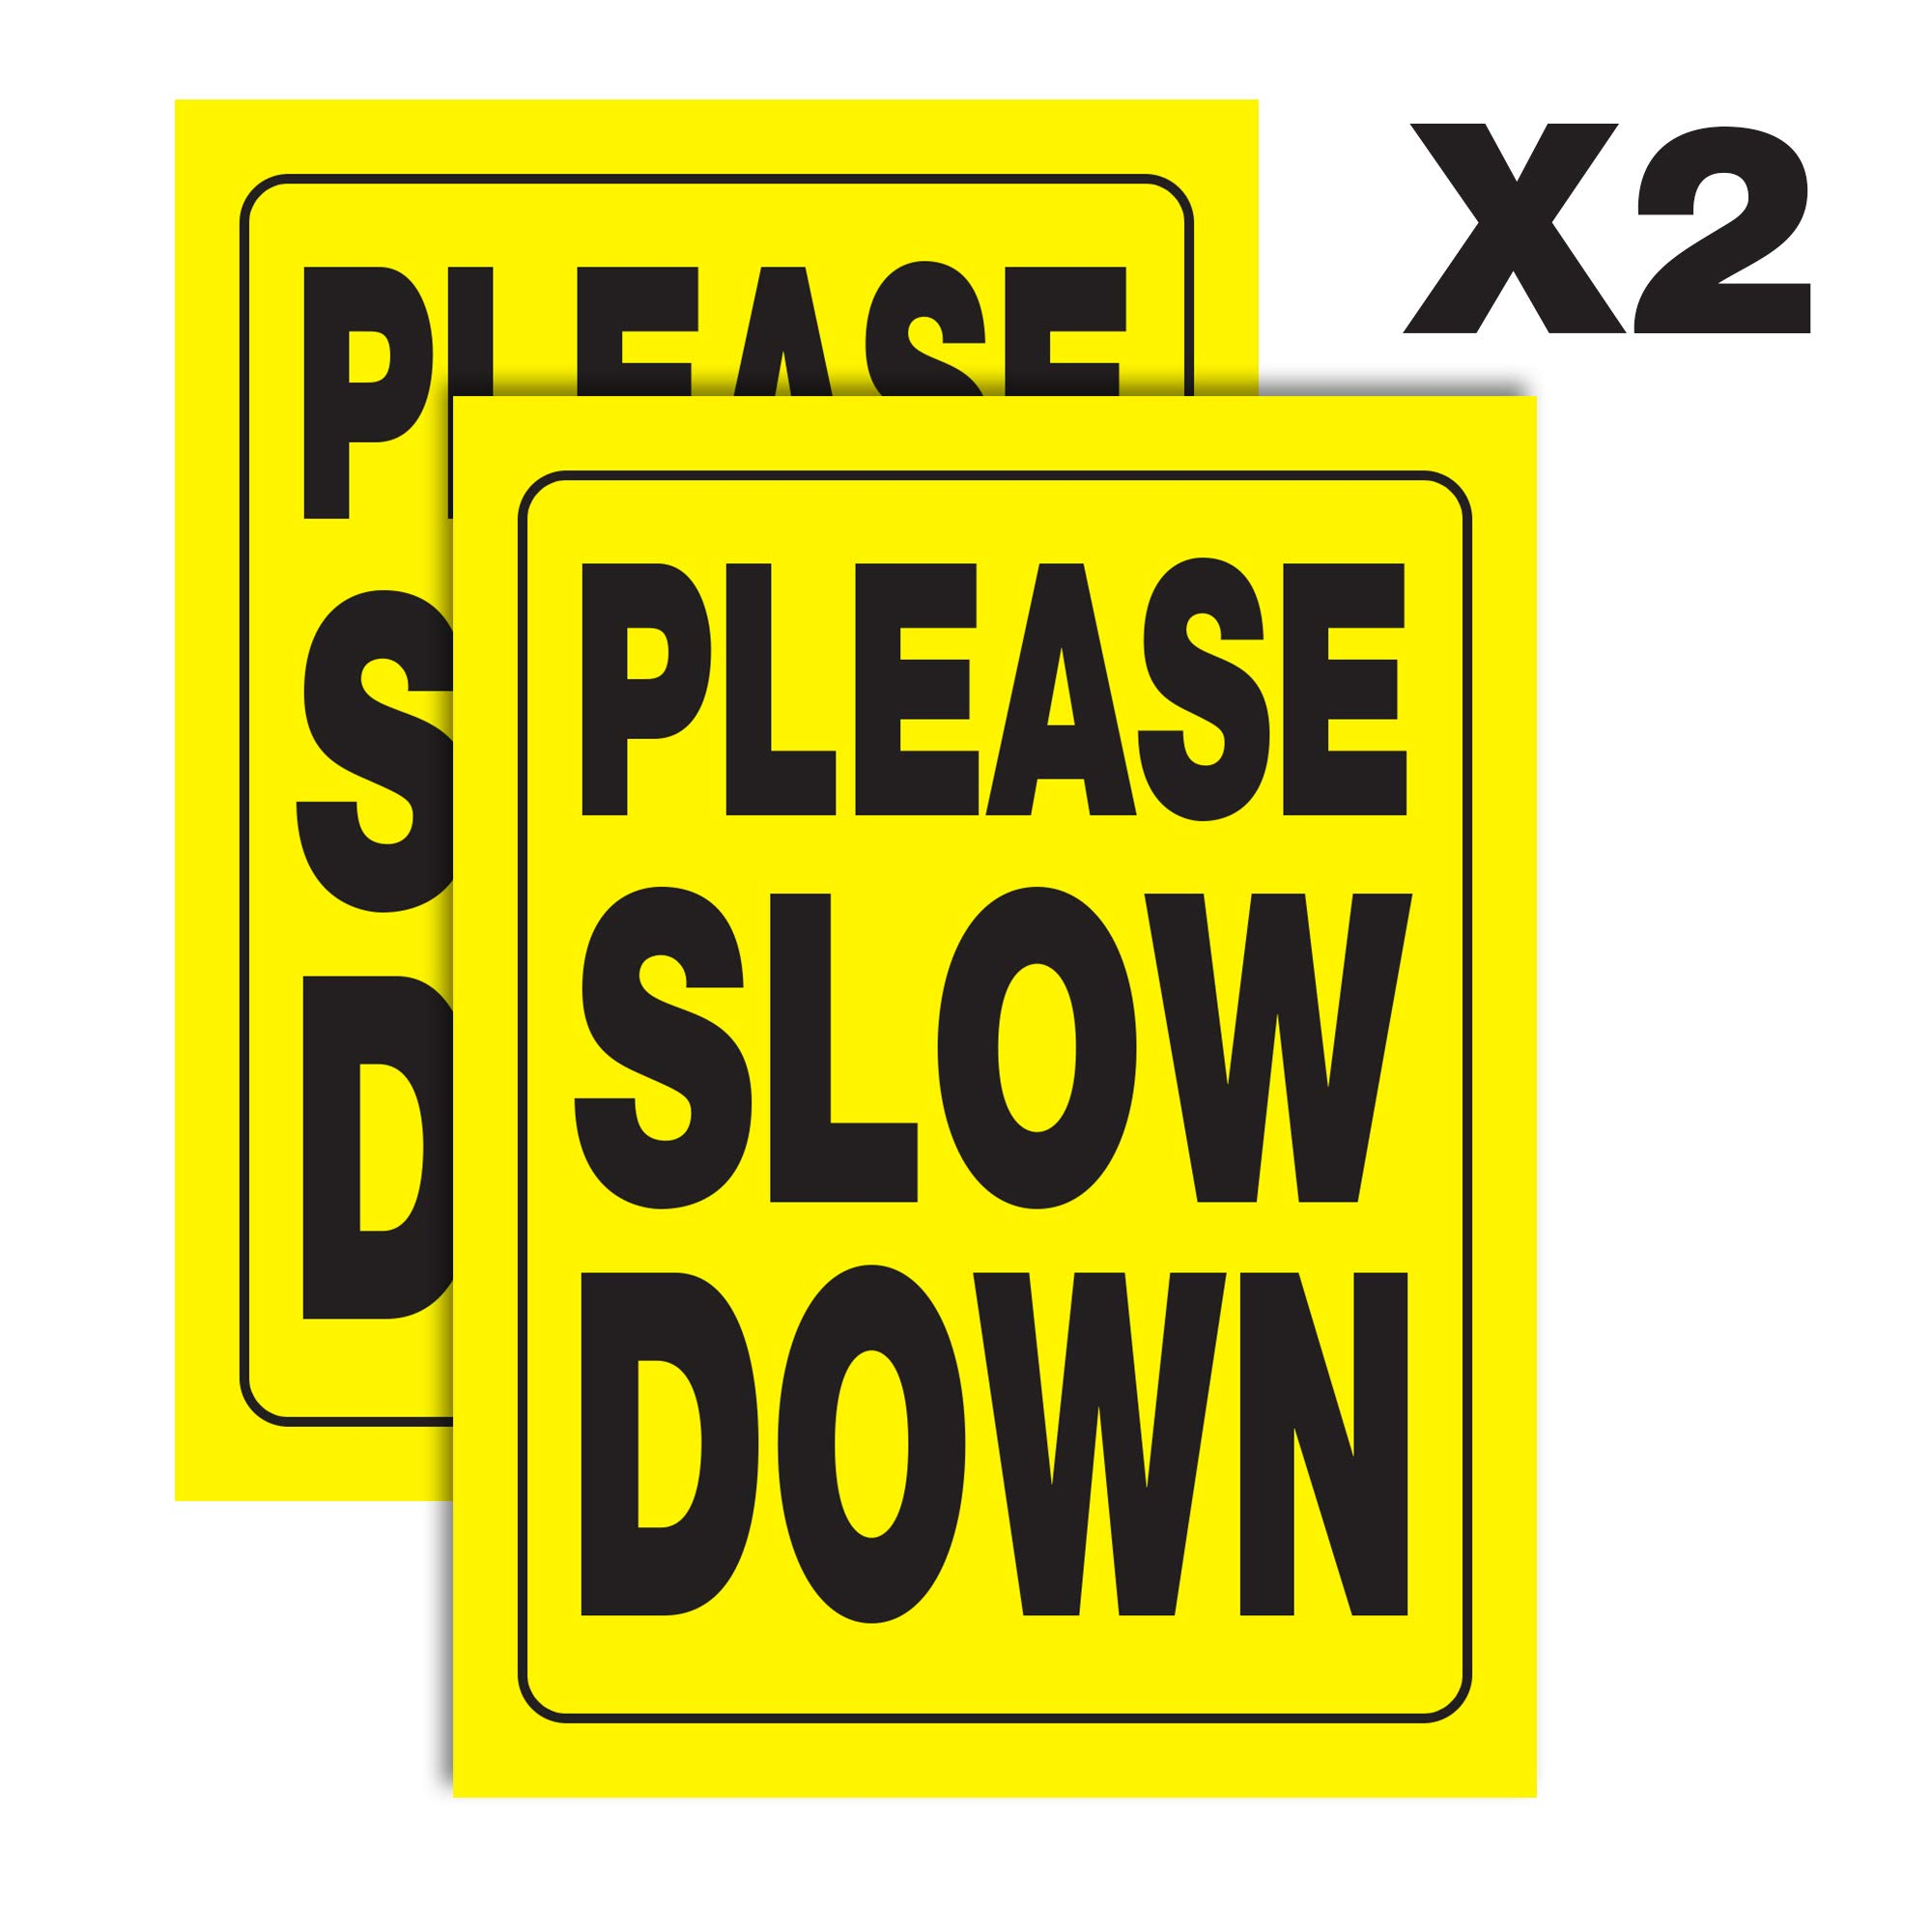 Accelerated Intelligence Inc. Please Slow Down Yellow Yard Sign | Double-Sided Black on Yellow Safety Slow Down Signs for Sidewalks, Yards and Driveways 18'' x 24'' (2 Pack)